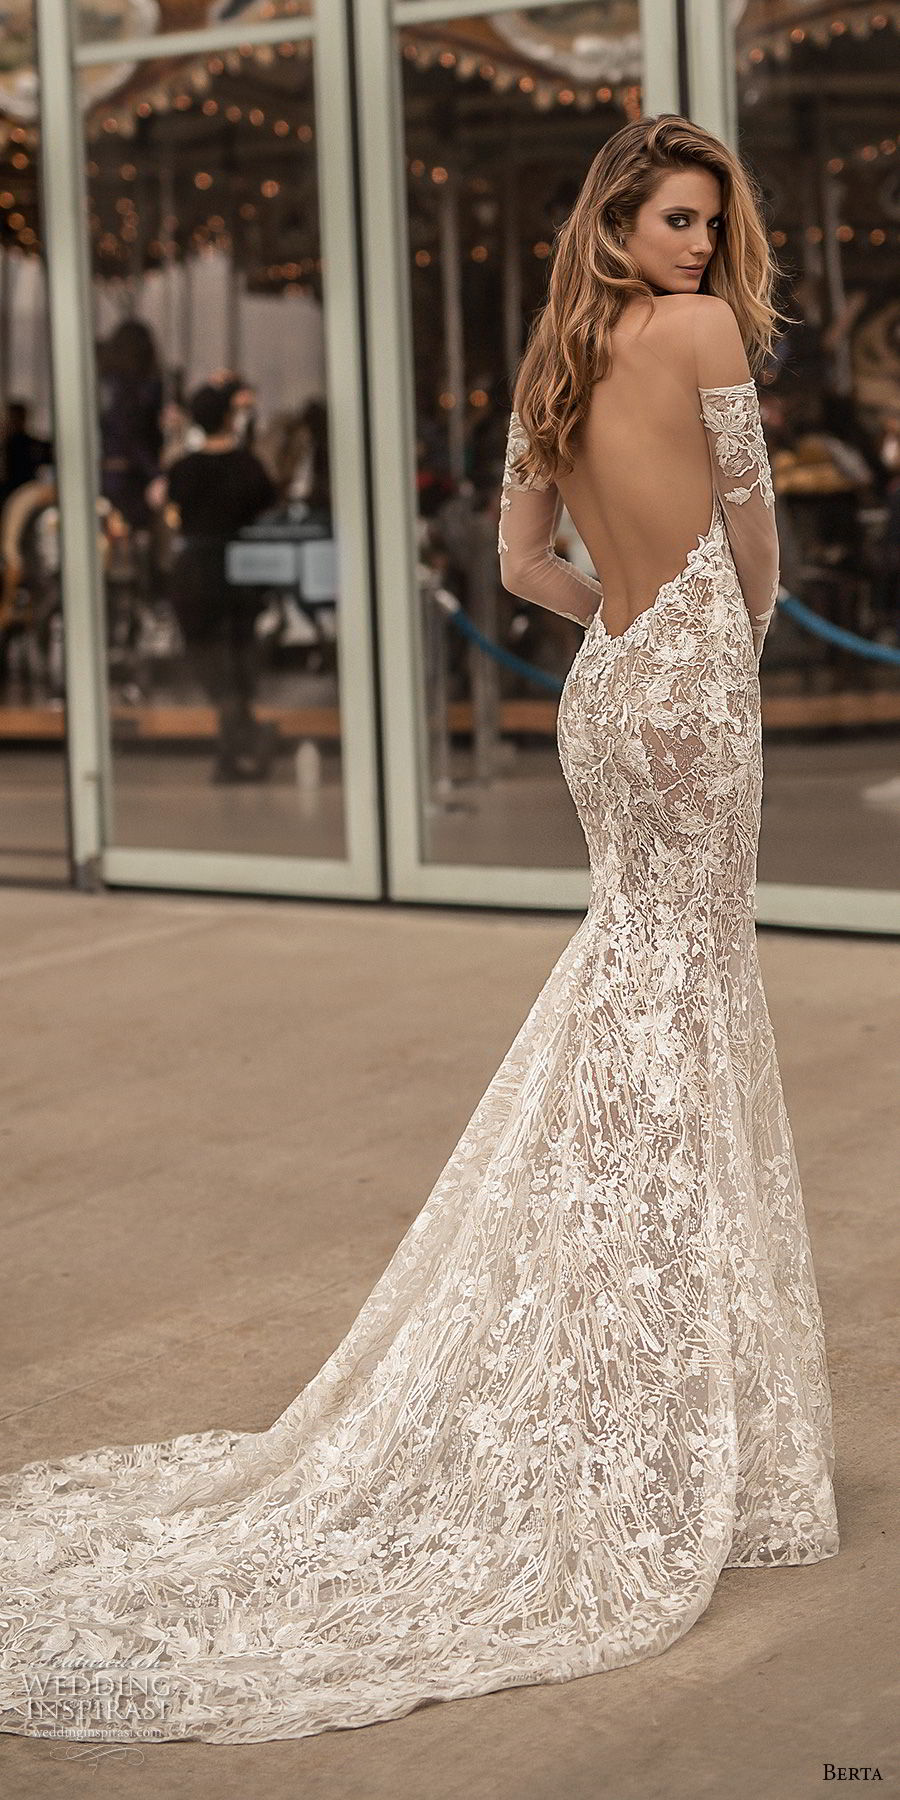 berta spring 2018 bridal long sleeves off the shoulder sweetheart neckline full embellishment sexy elegant fit and flare wedding dress open low back medium train (3) bv